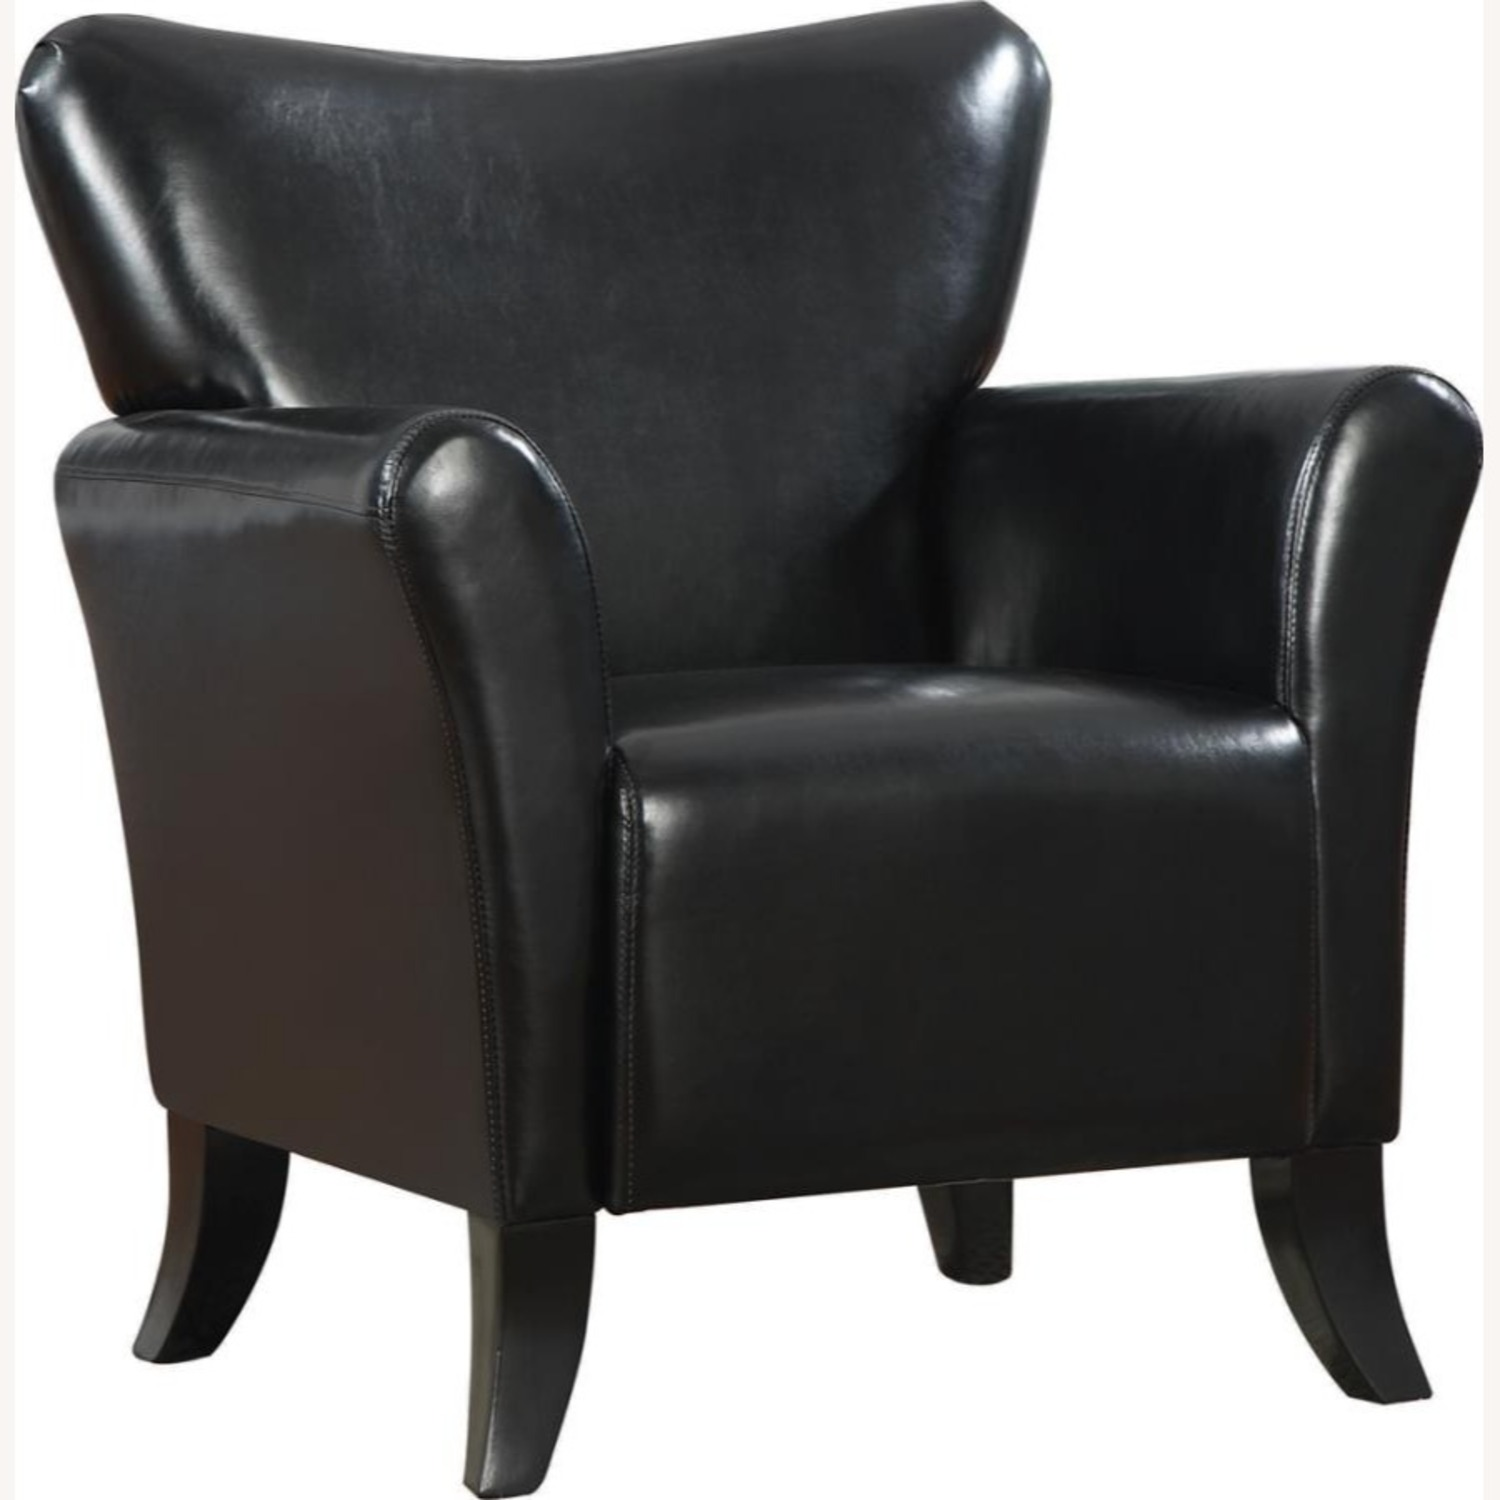 Styling Accent Chair In Black Leatherette - image-0